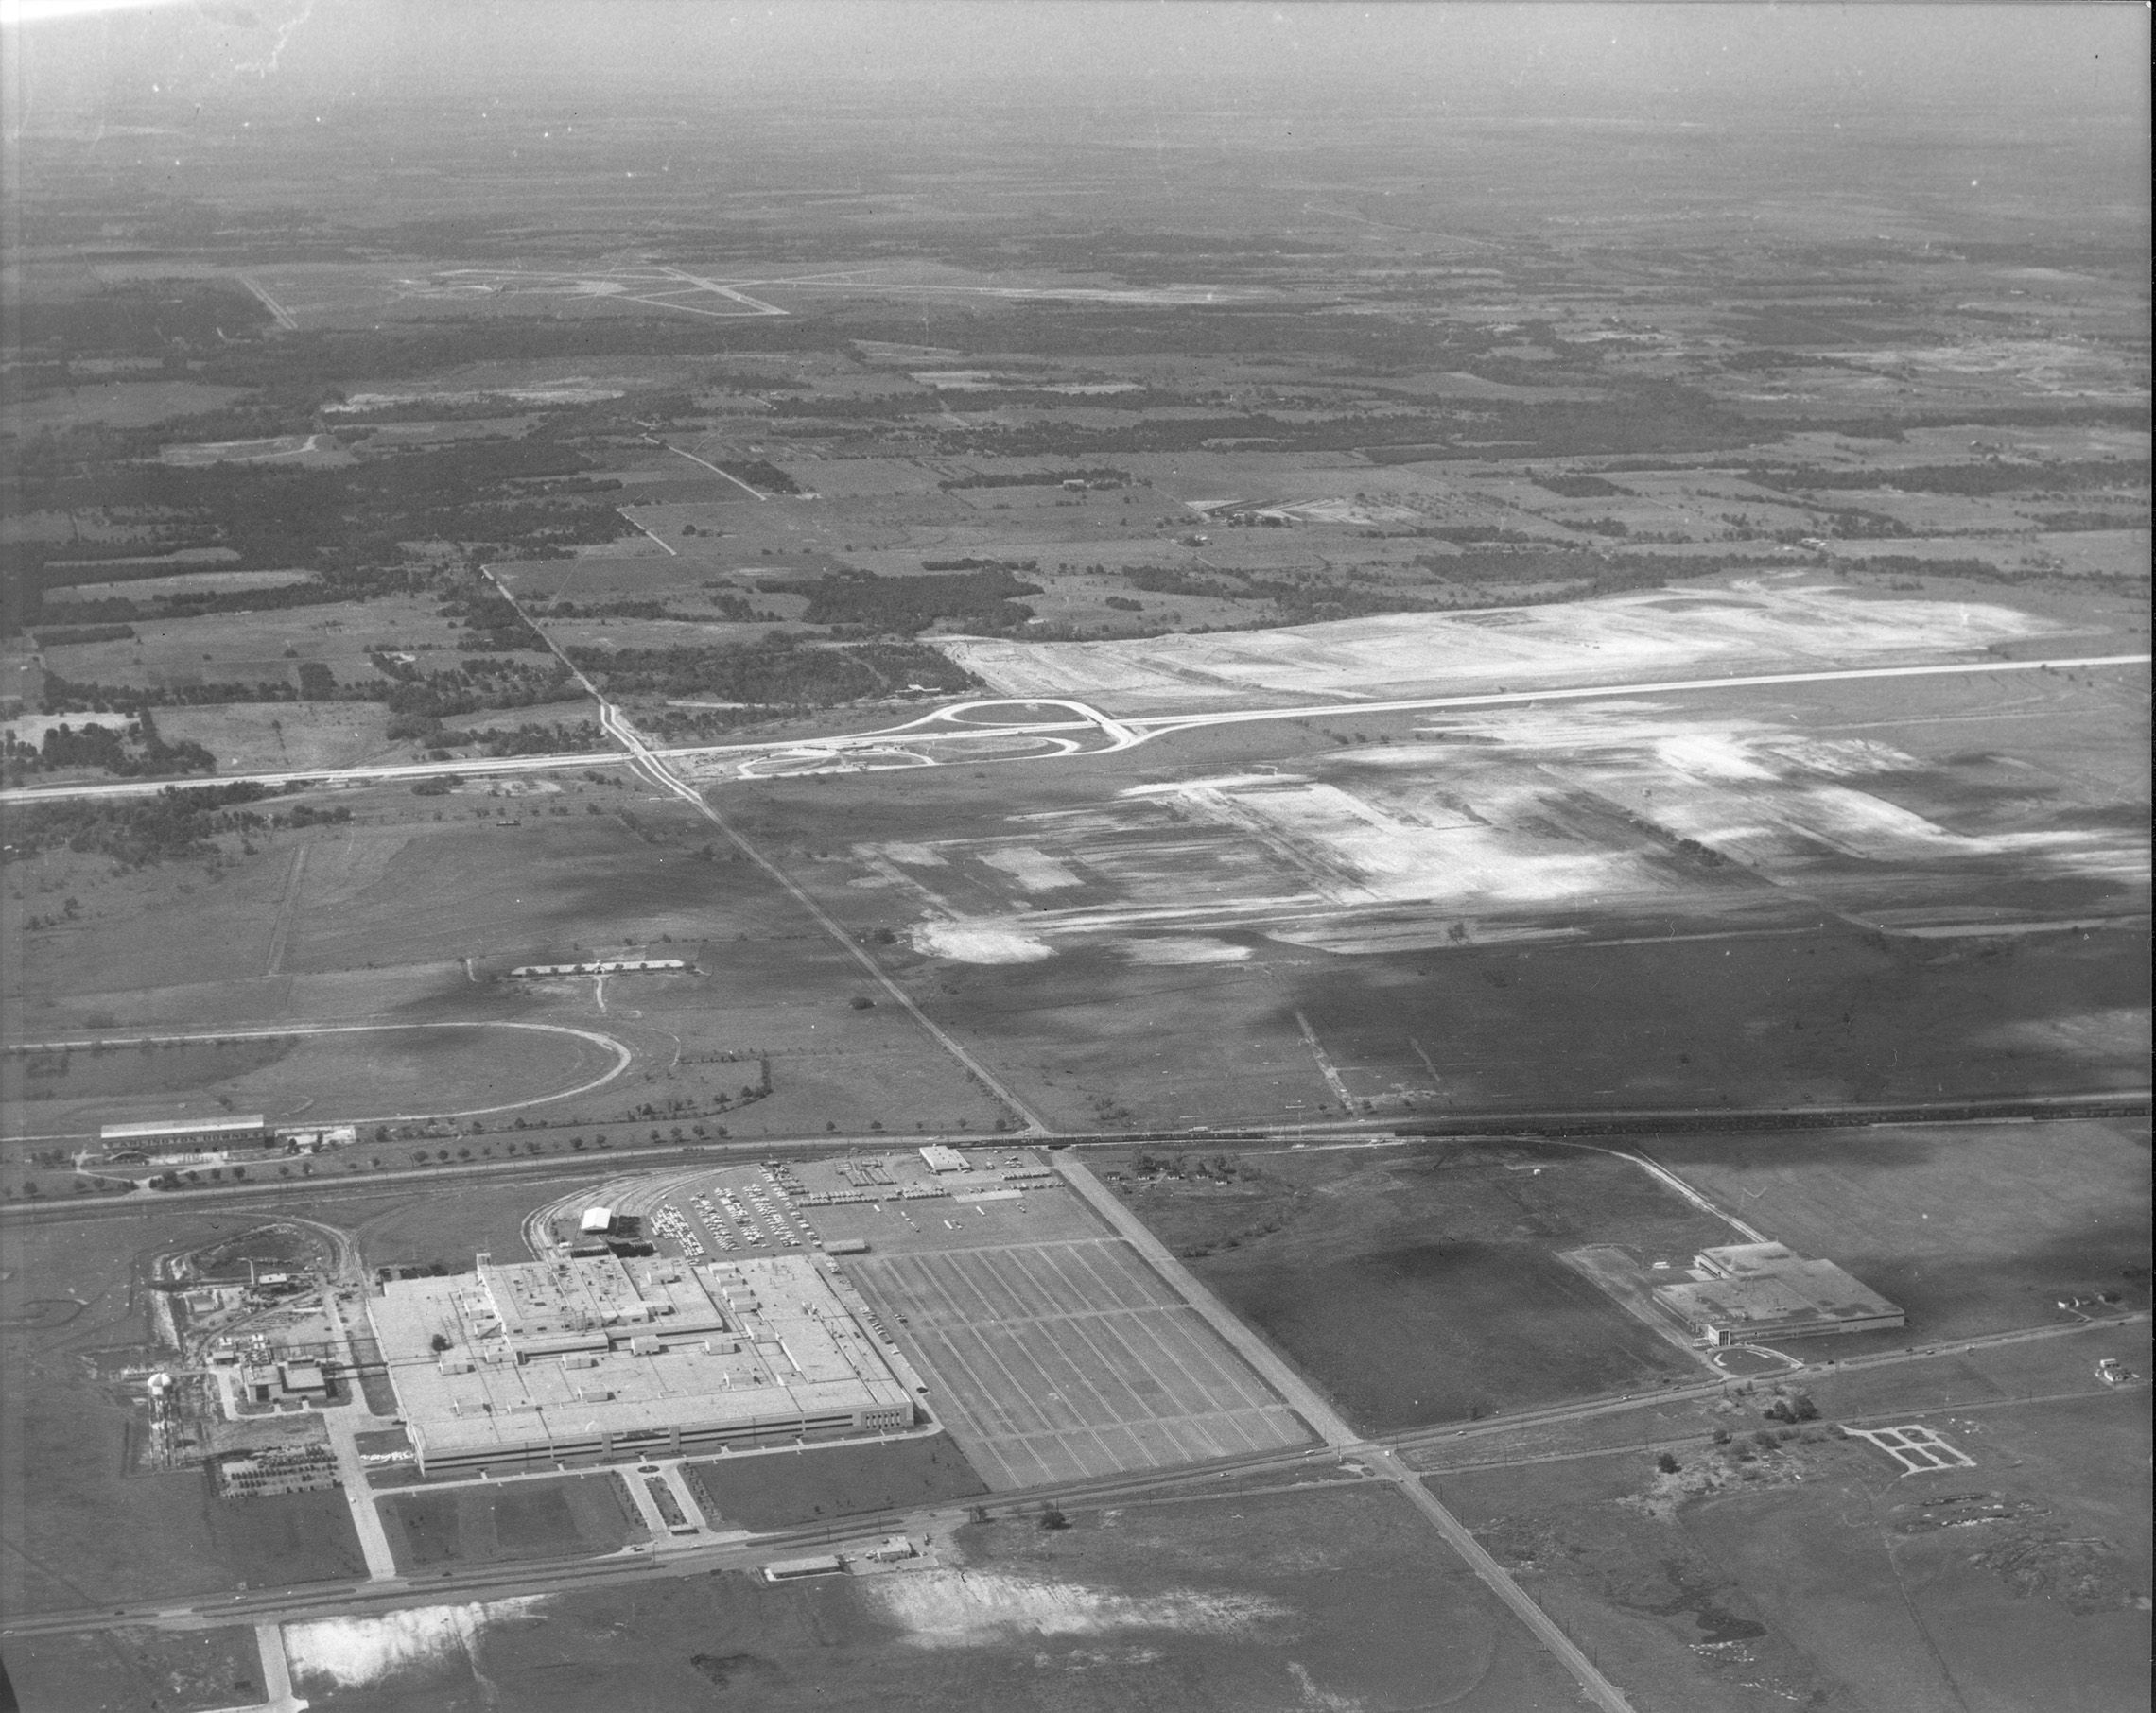 General Motors Plant 1957 View Looking North Along What Is Today